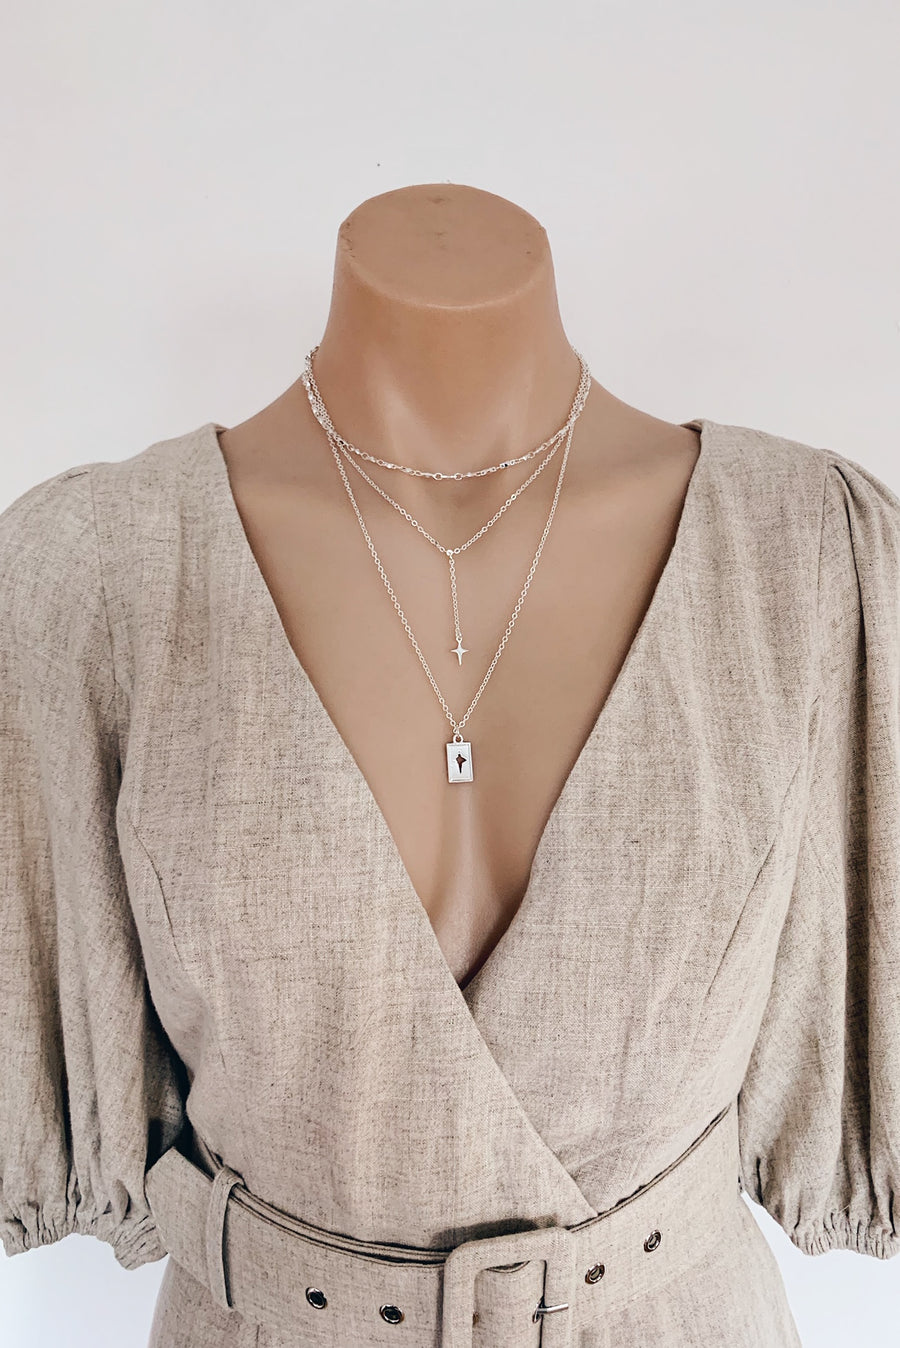 Daegan Necklace in Silver - HER Empire Fashion Boutique Terrigal & Online